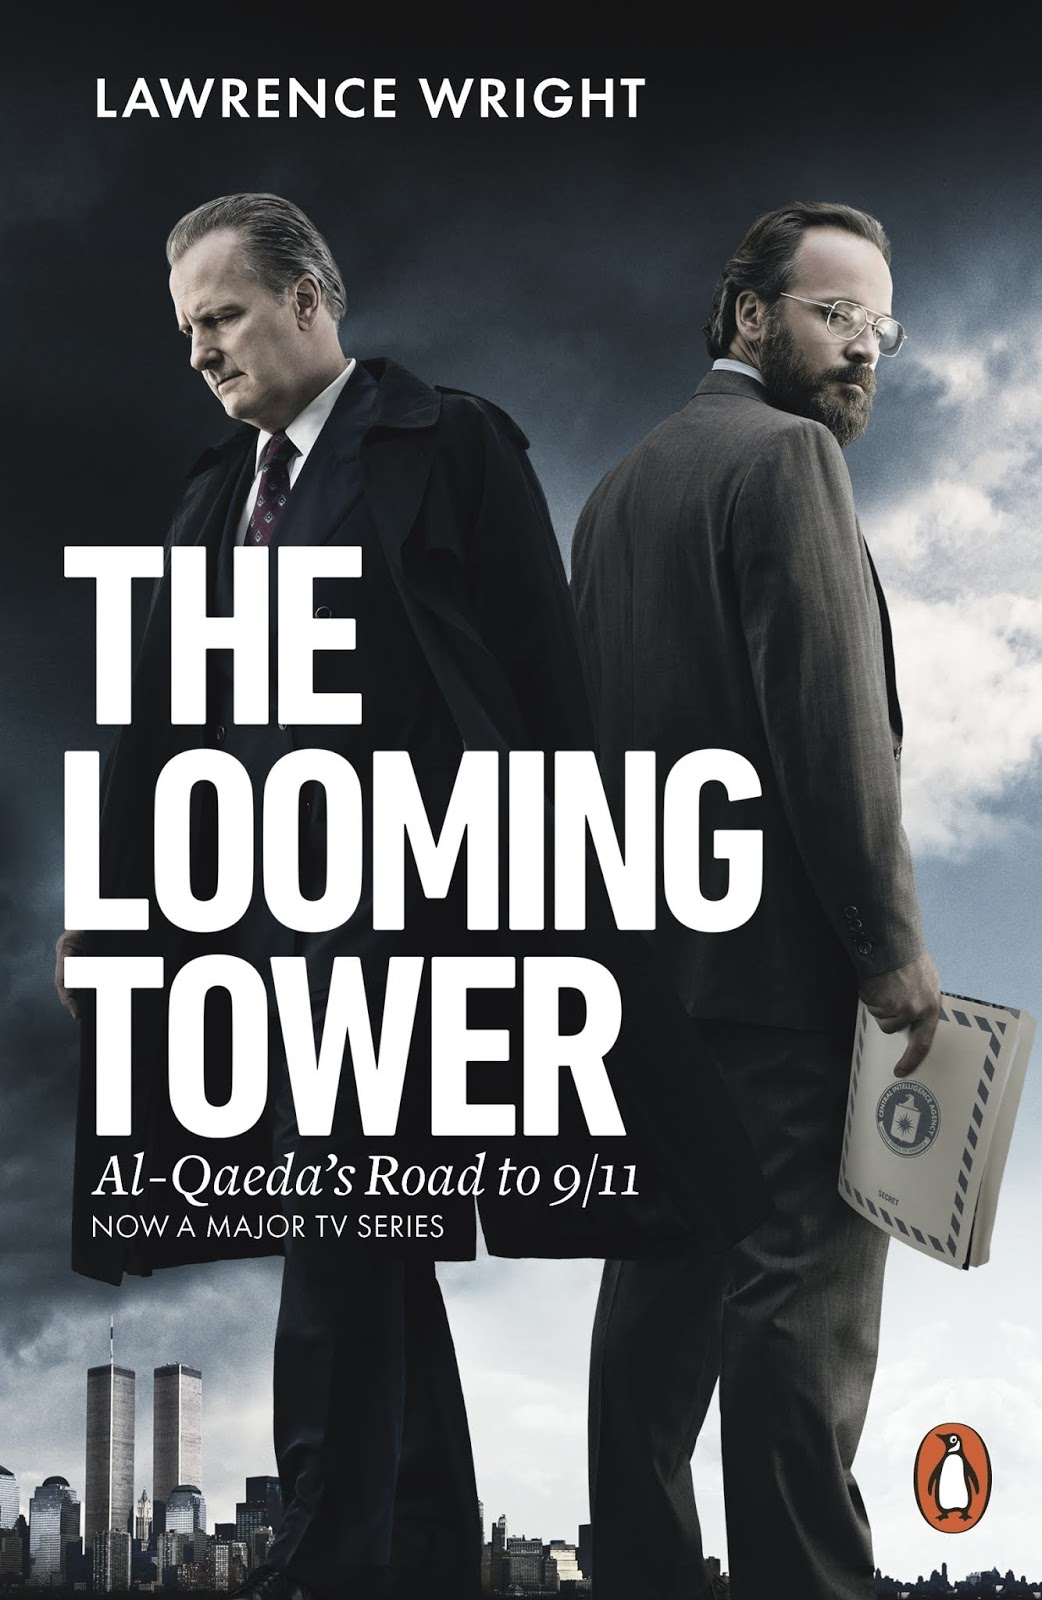 Looming Tower